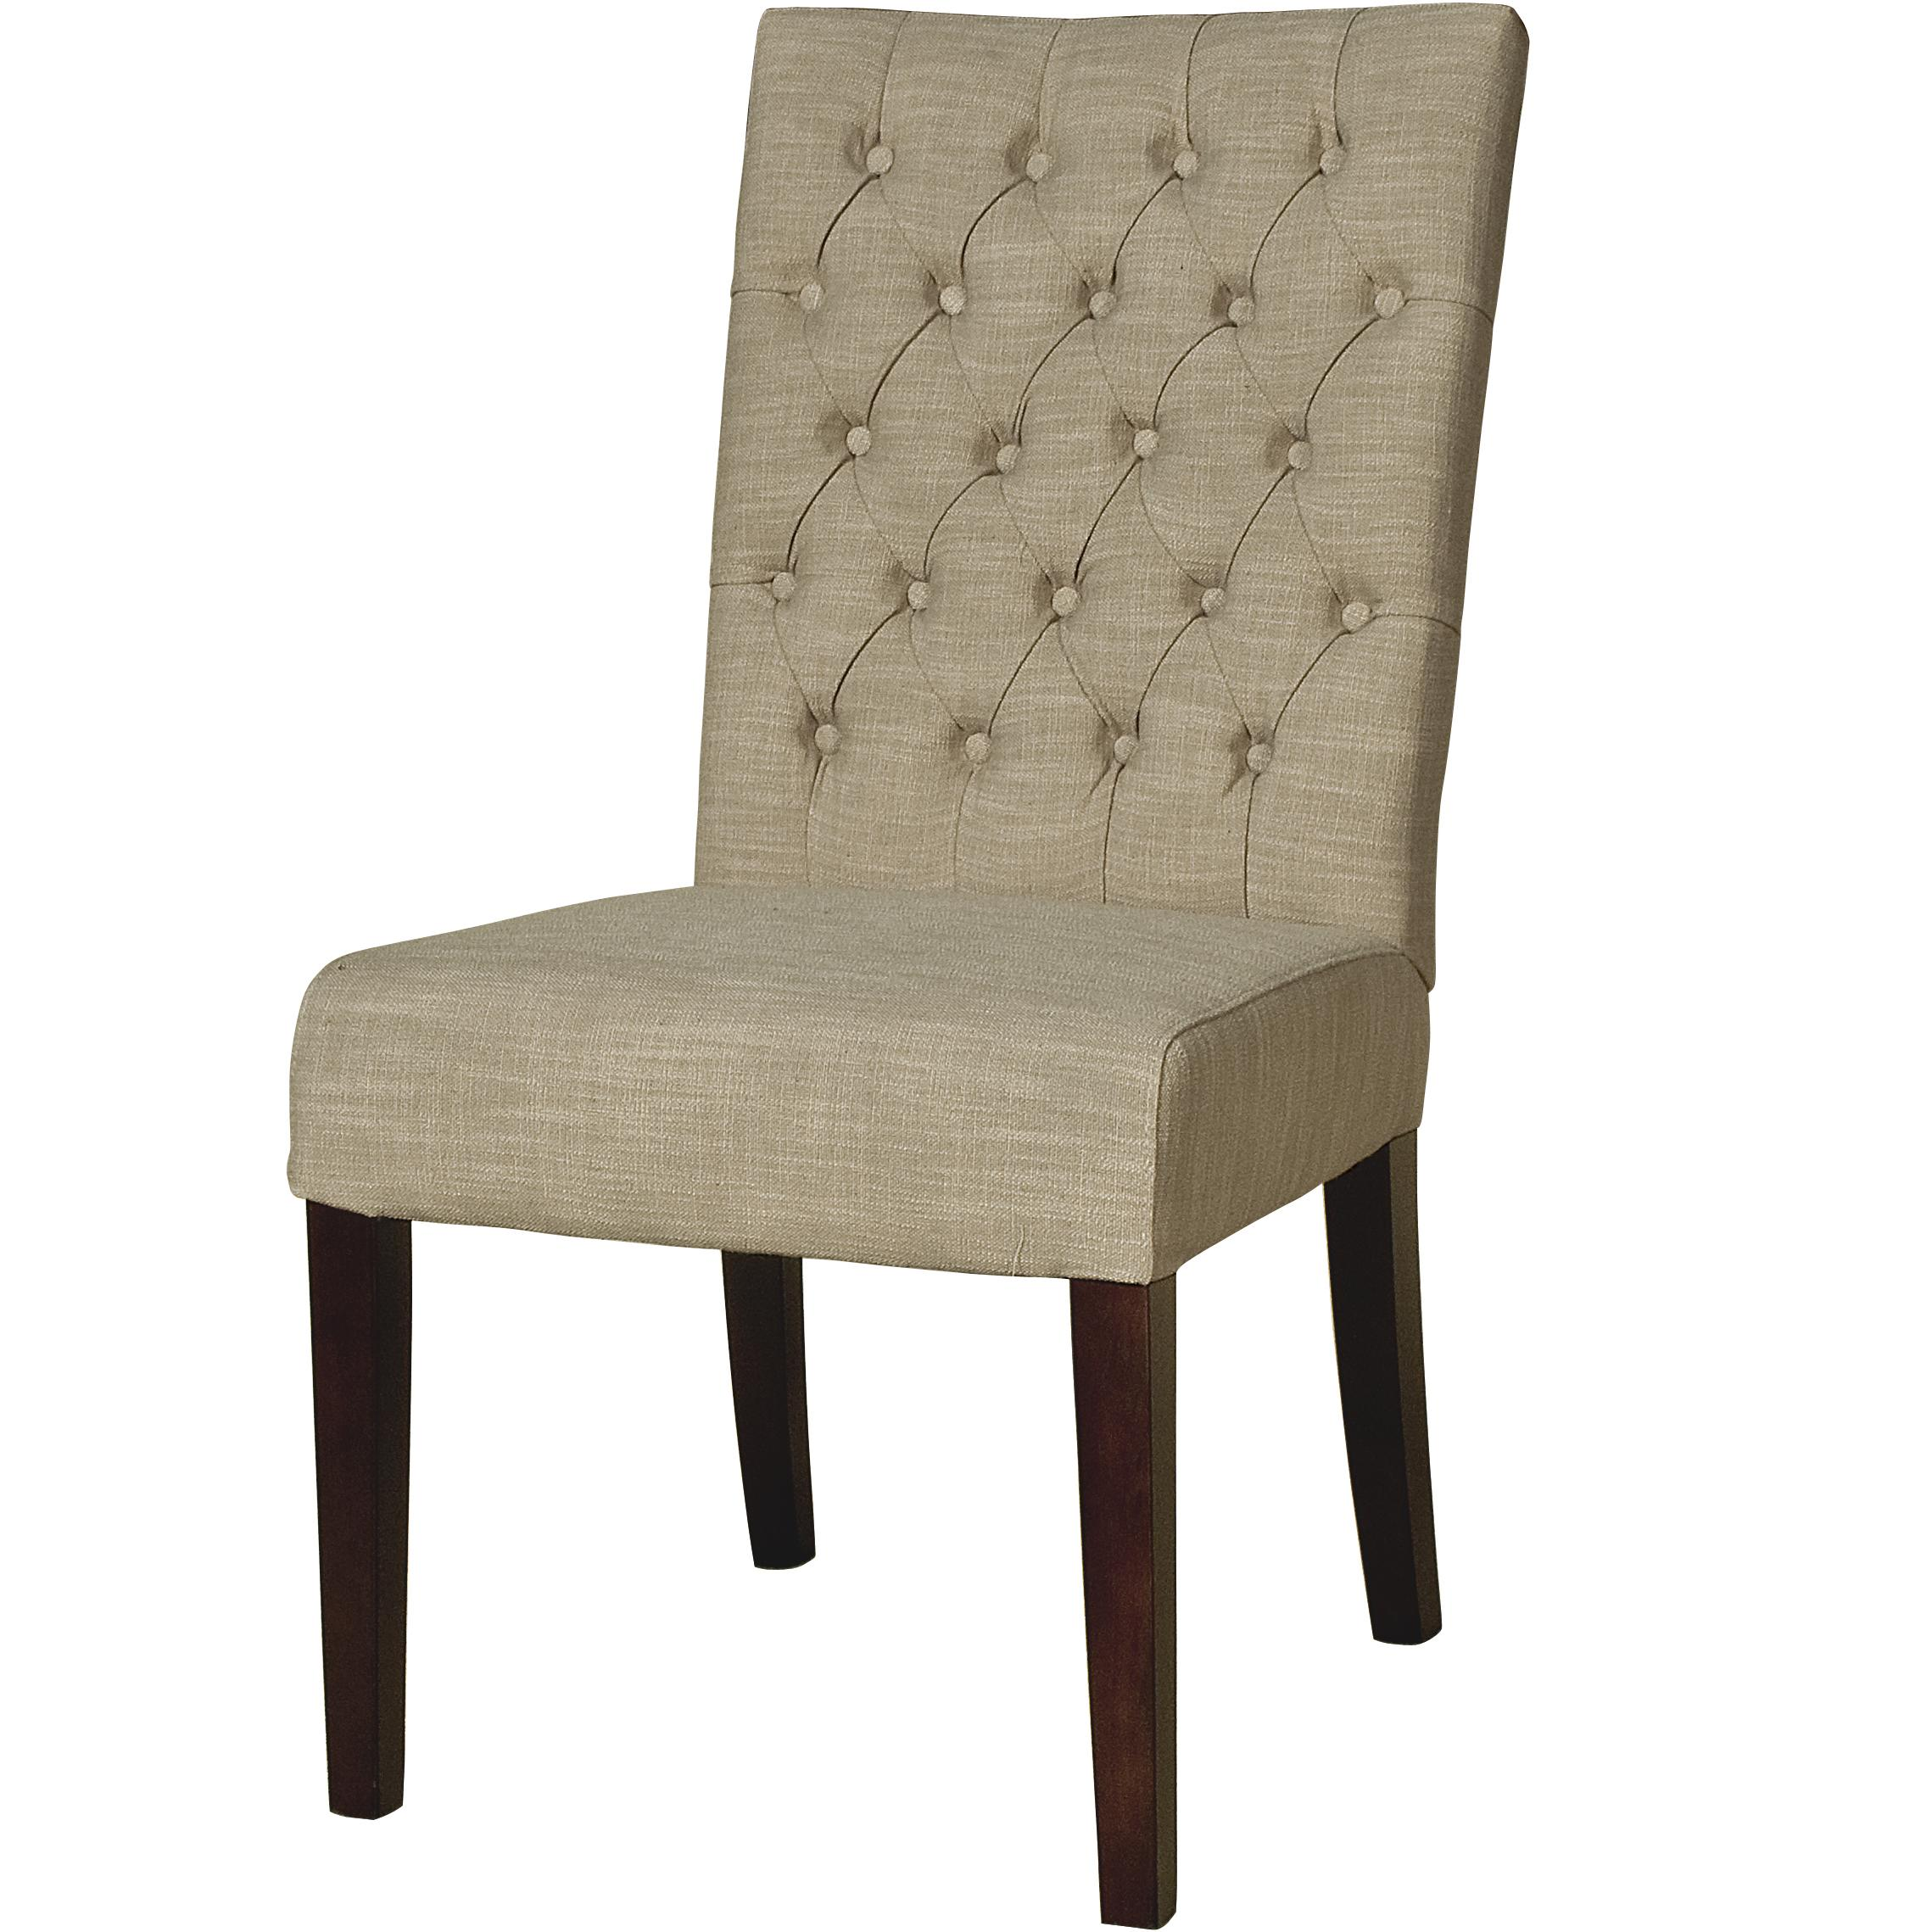 BeGlobal Meridian Dining Side Chair - Item Number: G206-SARA-OXE-D-OxfordEcru